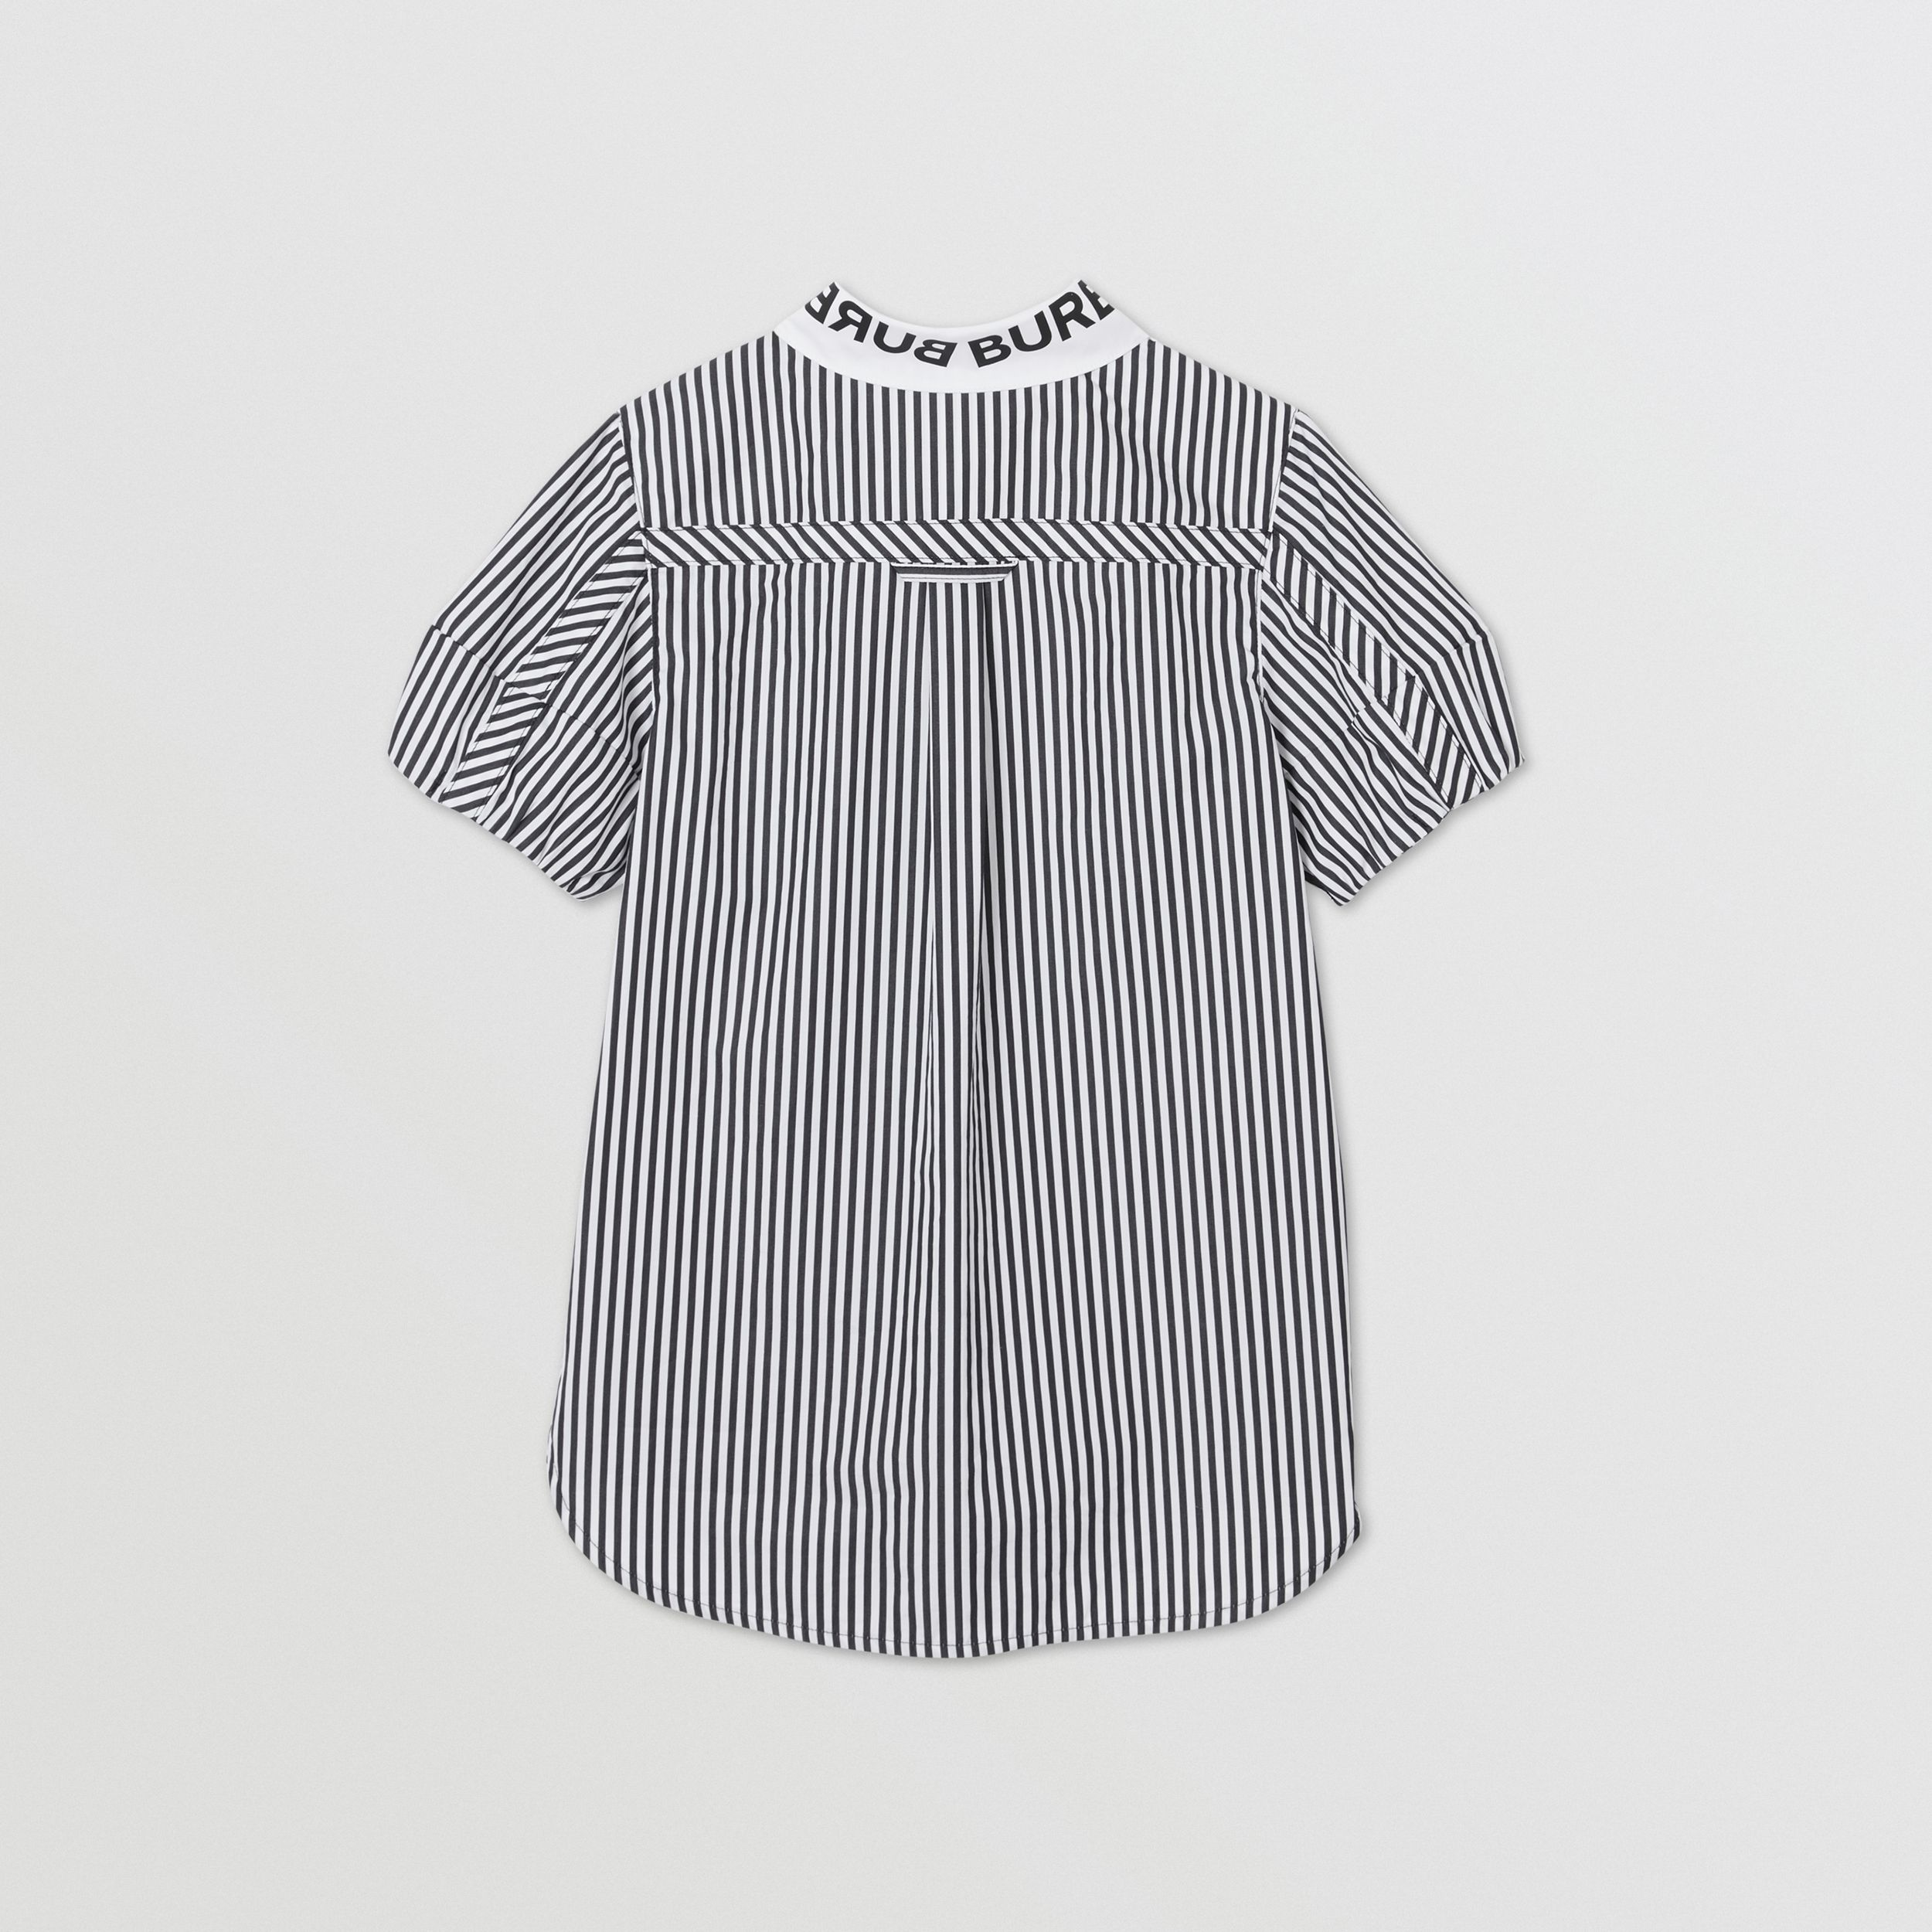 Logo Print Striped and Gingham Cotton Shirt Dress in Black | Burberry - 4